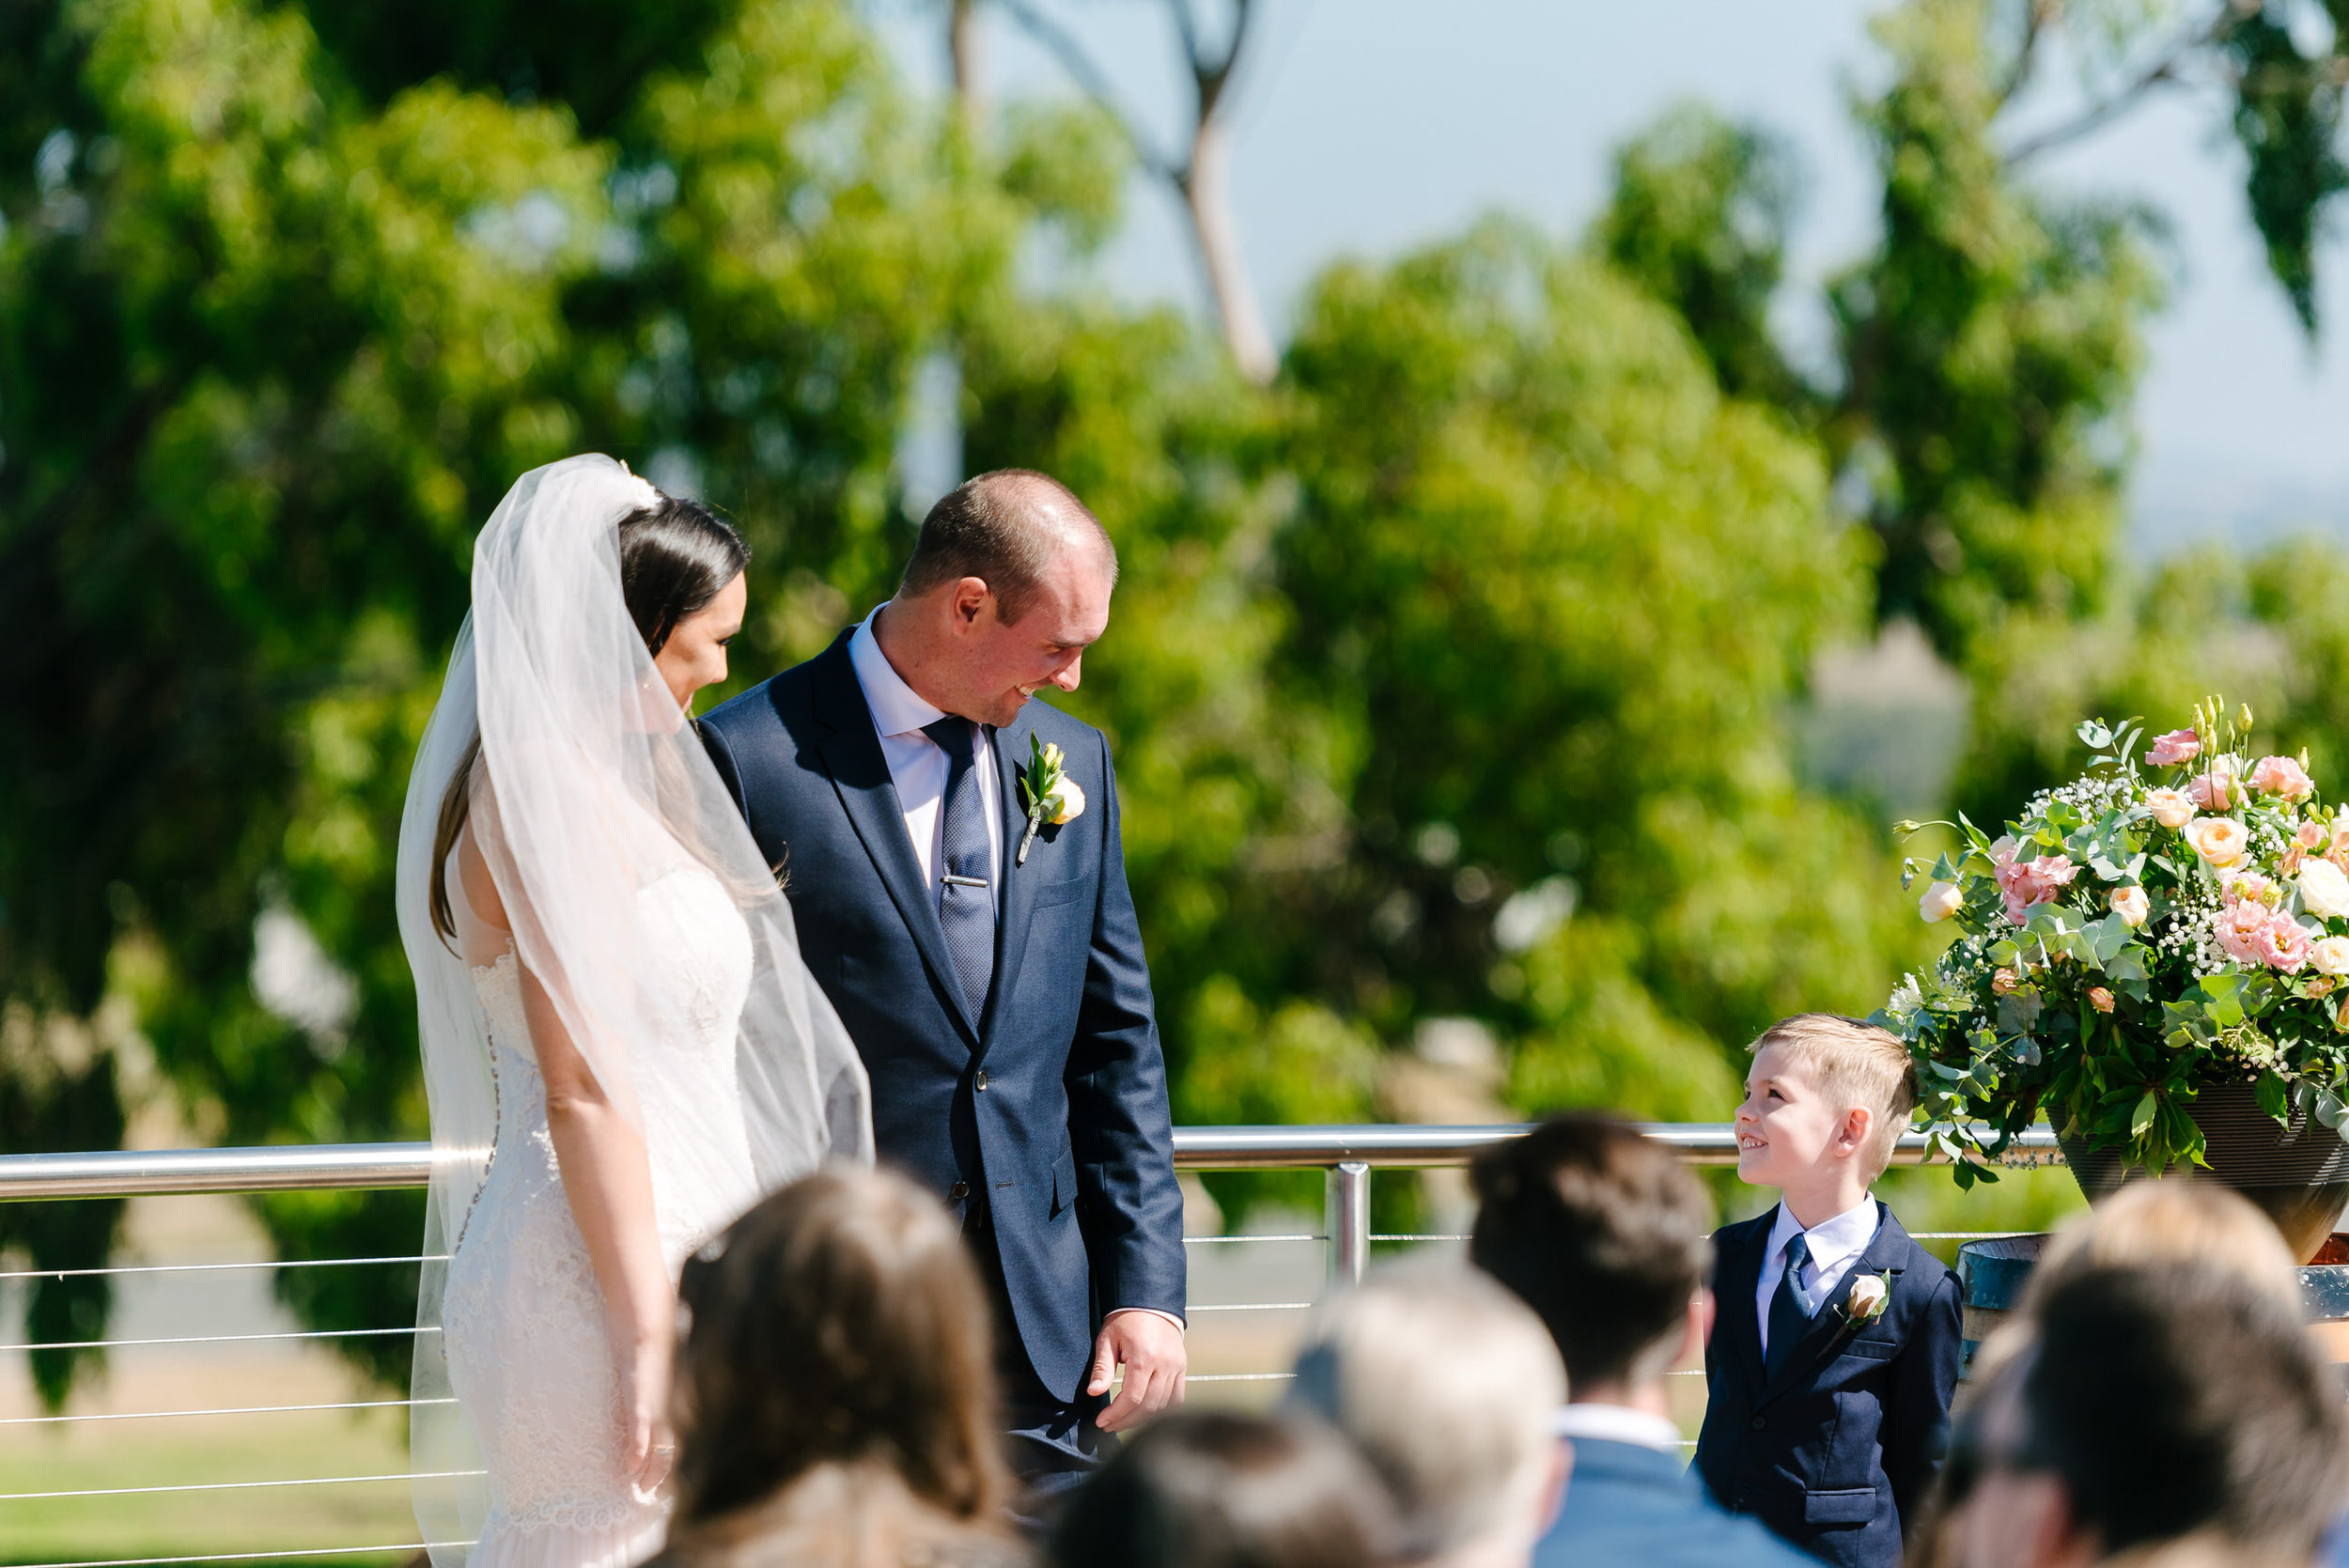 Justin_And_Jim_Photography_Balgownie_Winery_Wedding28.JPG